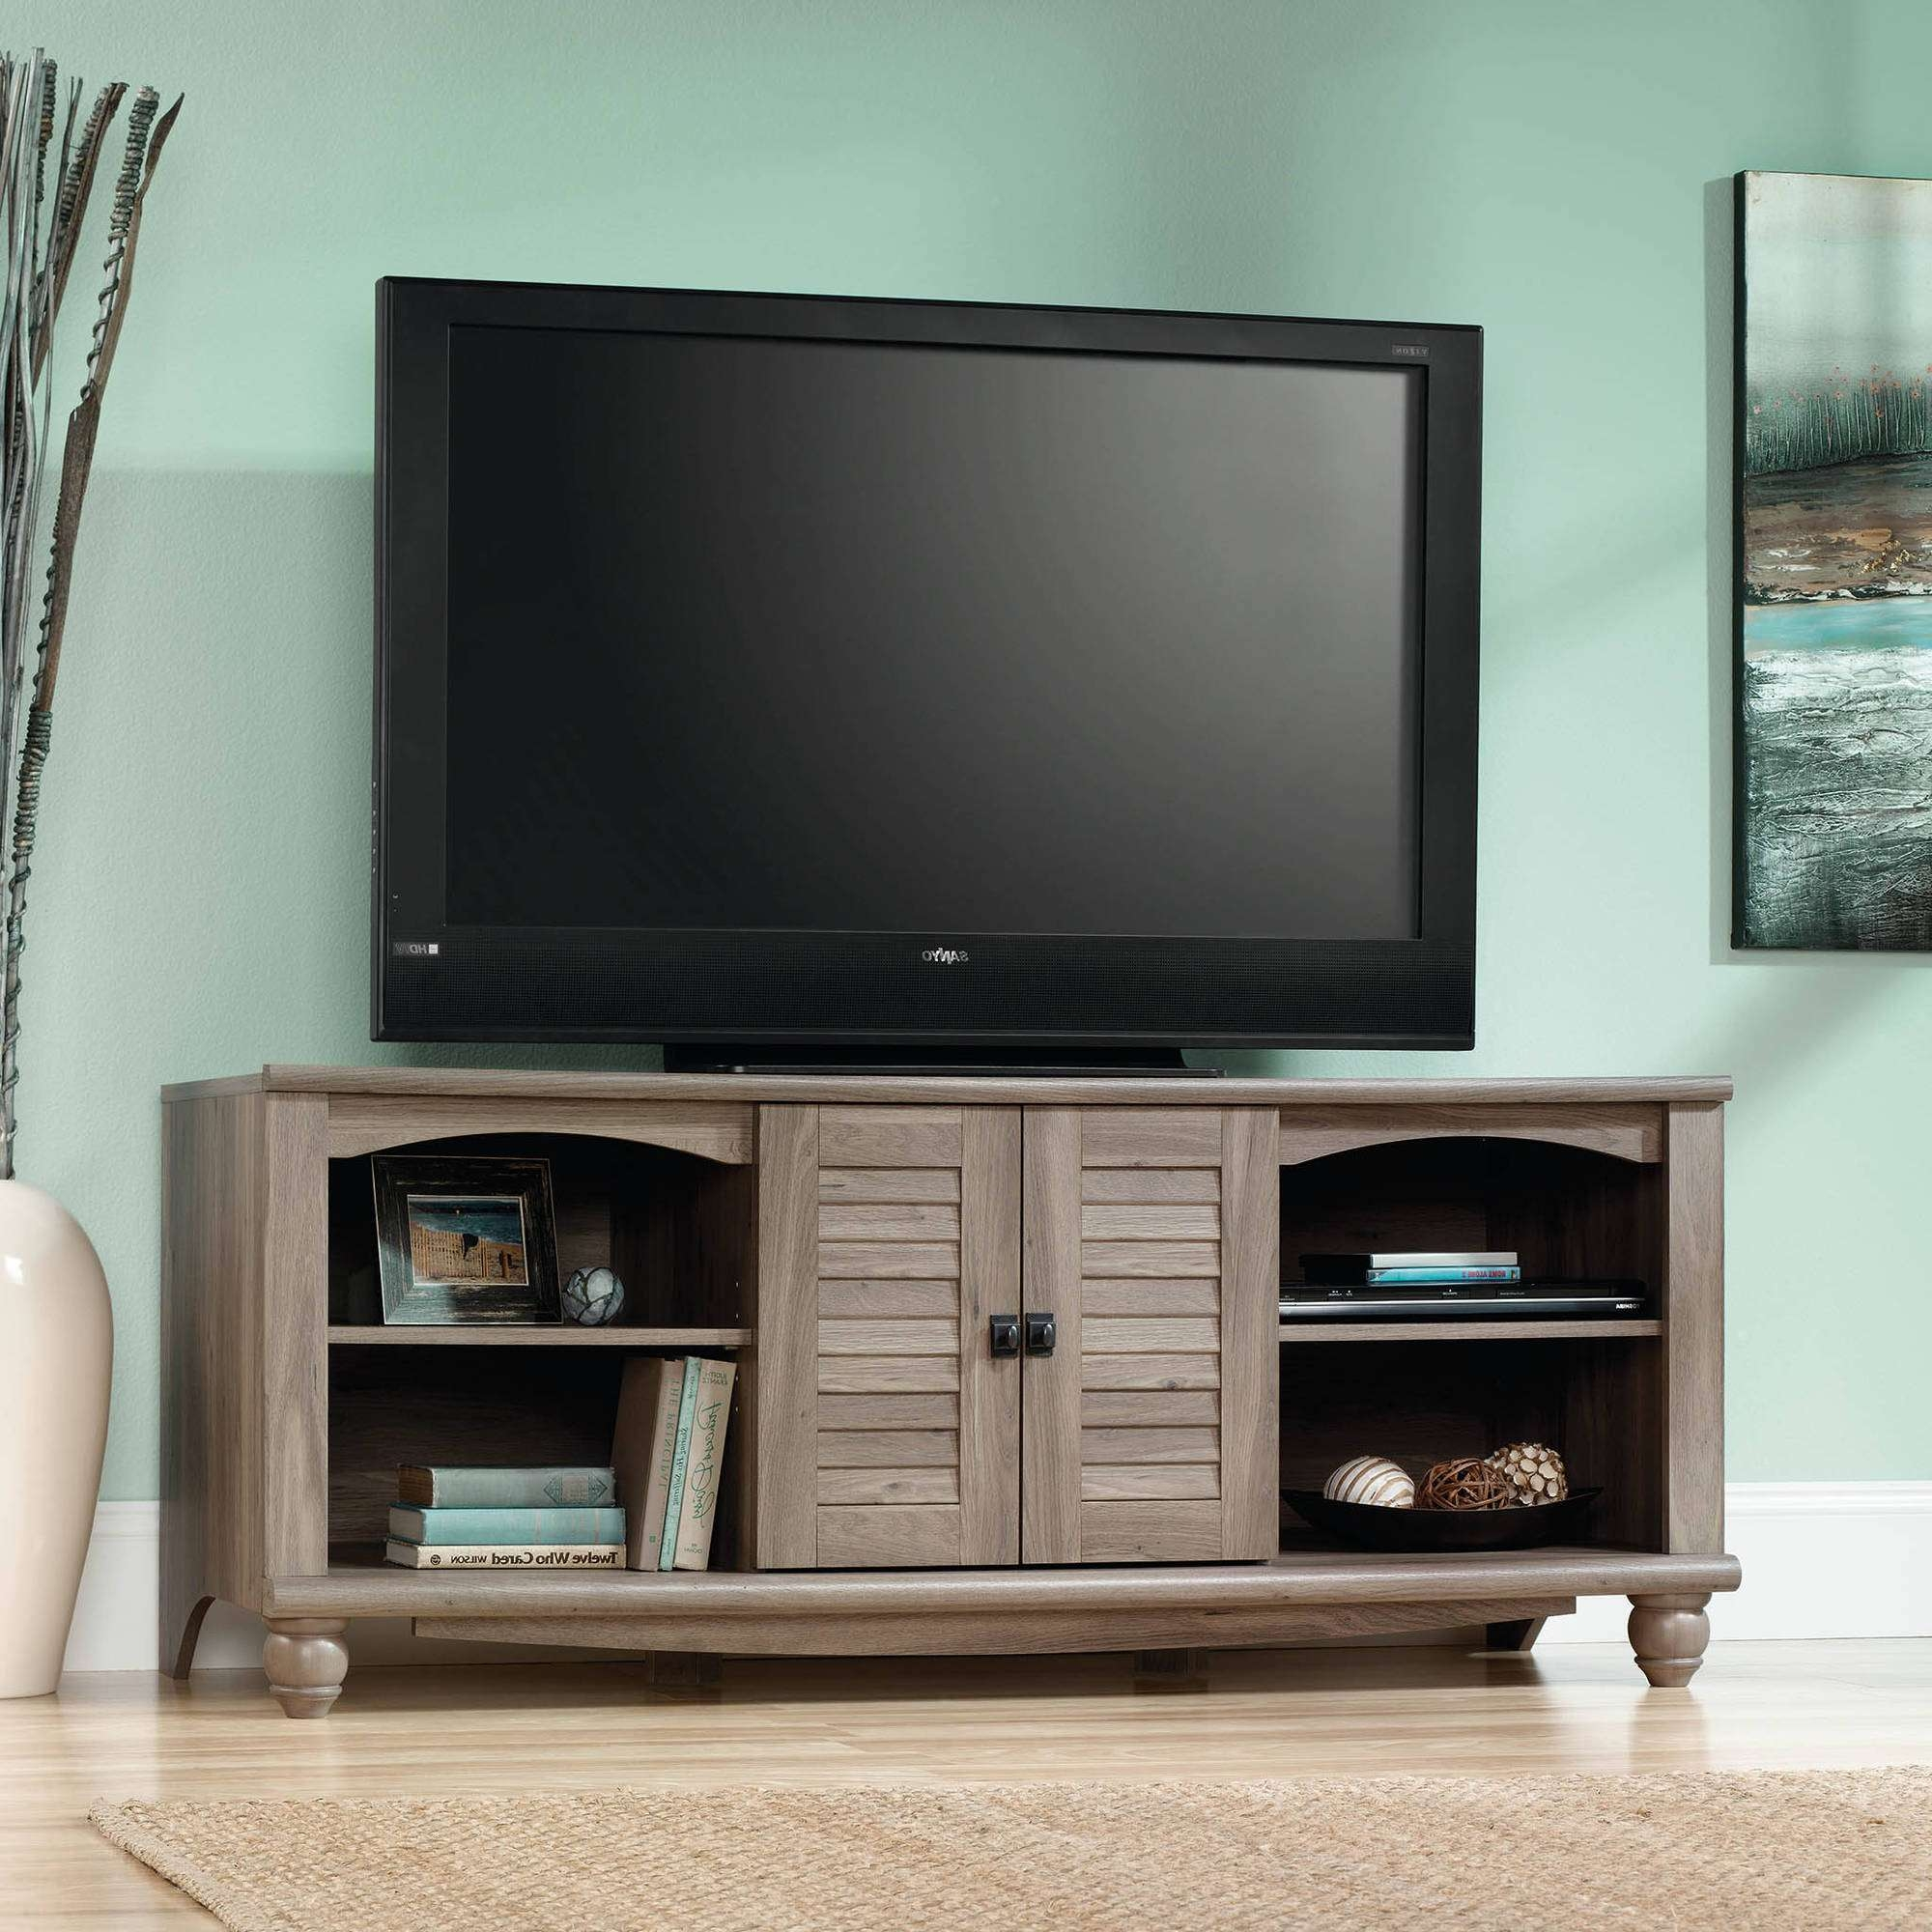 Tv Stands & Entertainment Centers – Walmart With Regard To Entertainment Center Tv Stands (View 3 of 15)